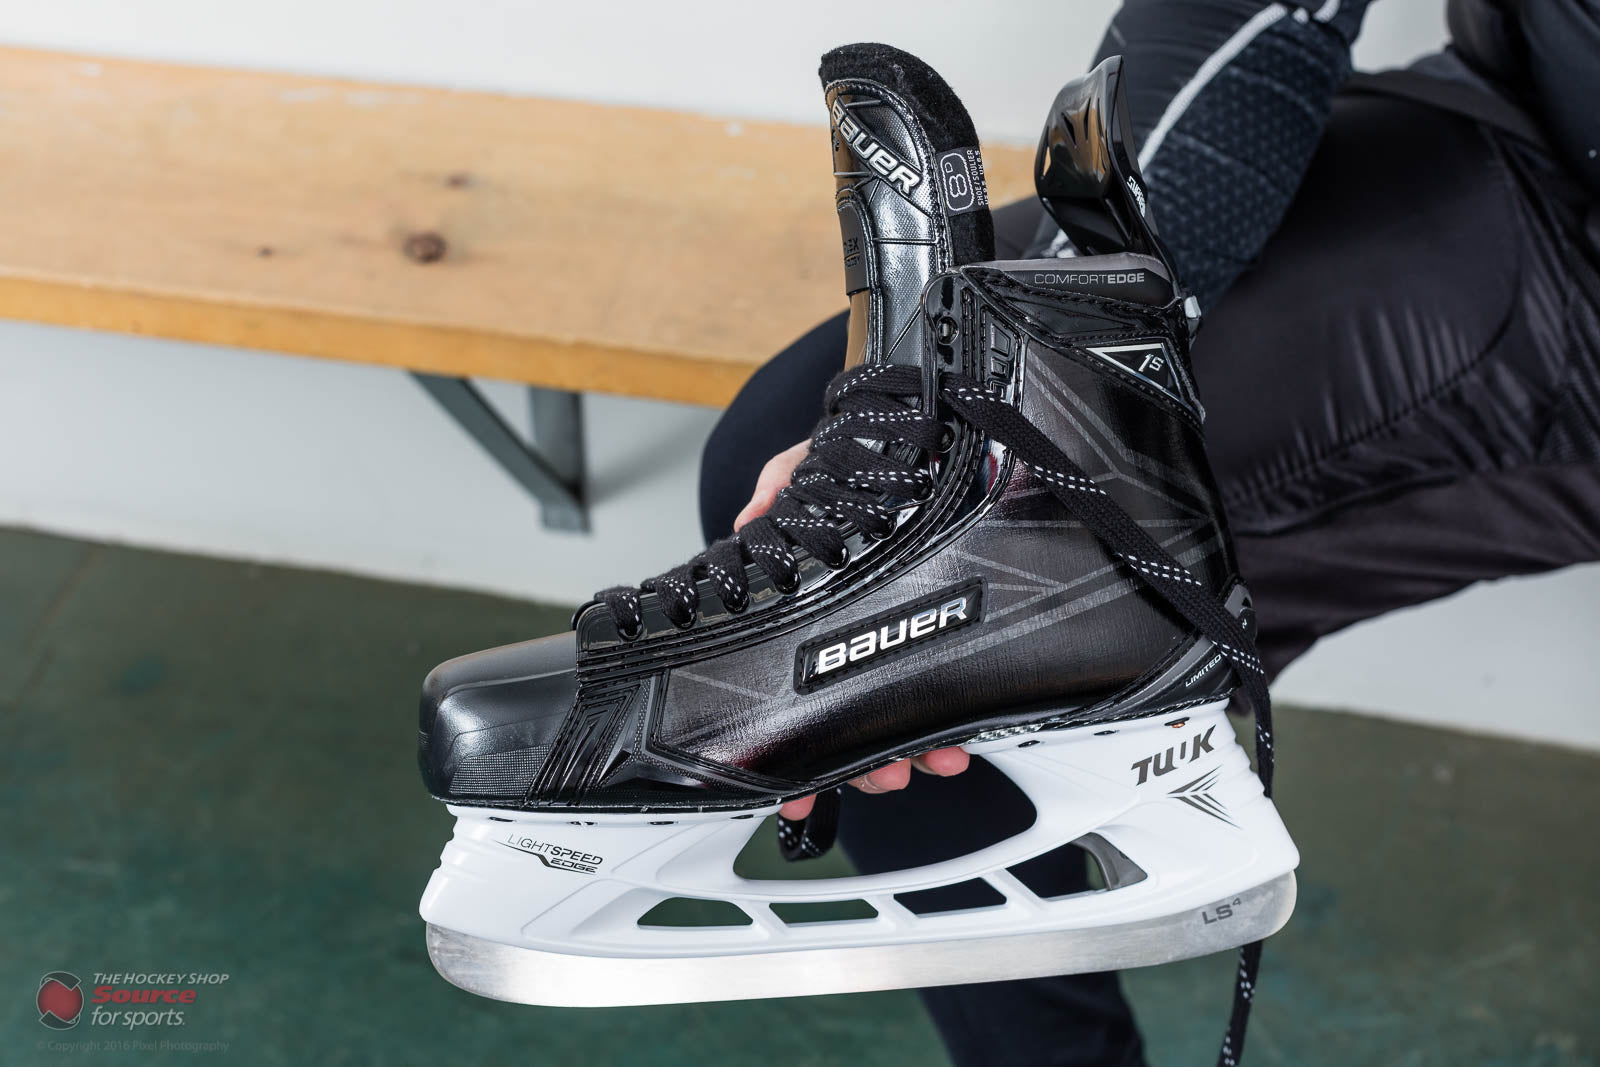 Bauer Supreme 1s Le Skate Review The